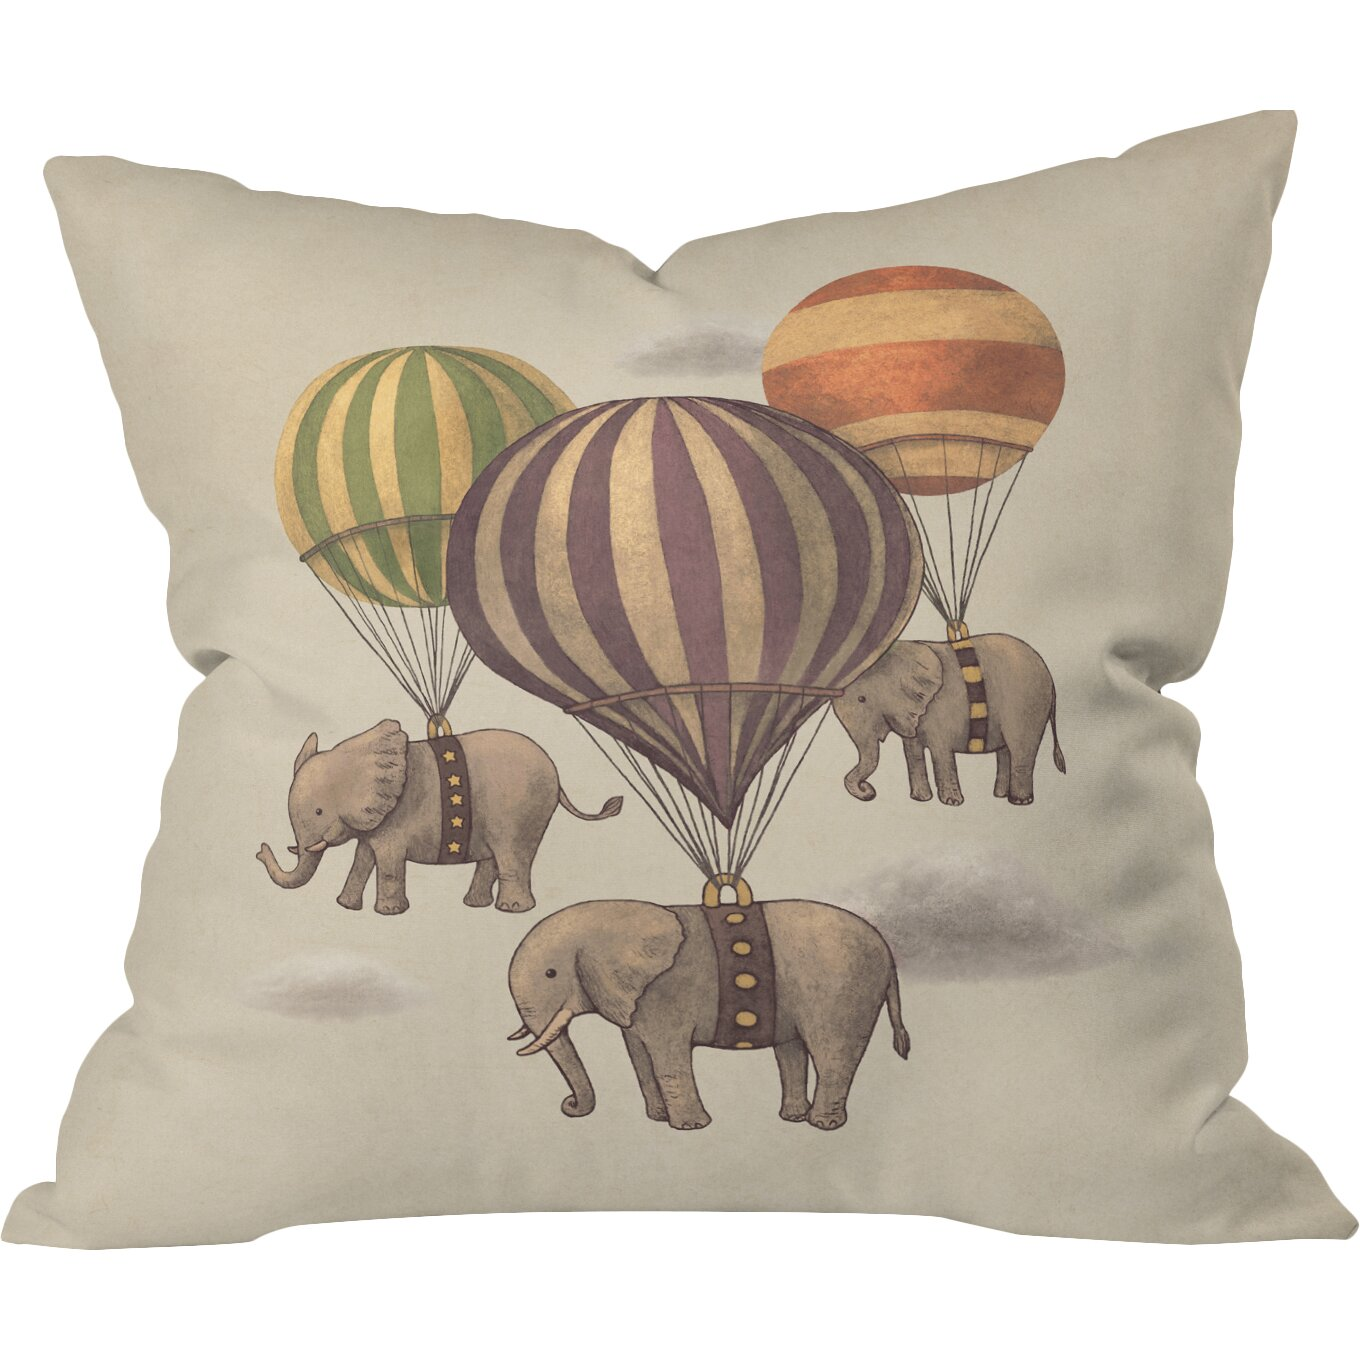 Terry Fan Throw Pillow Wayfair